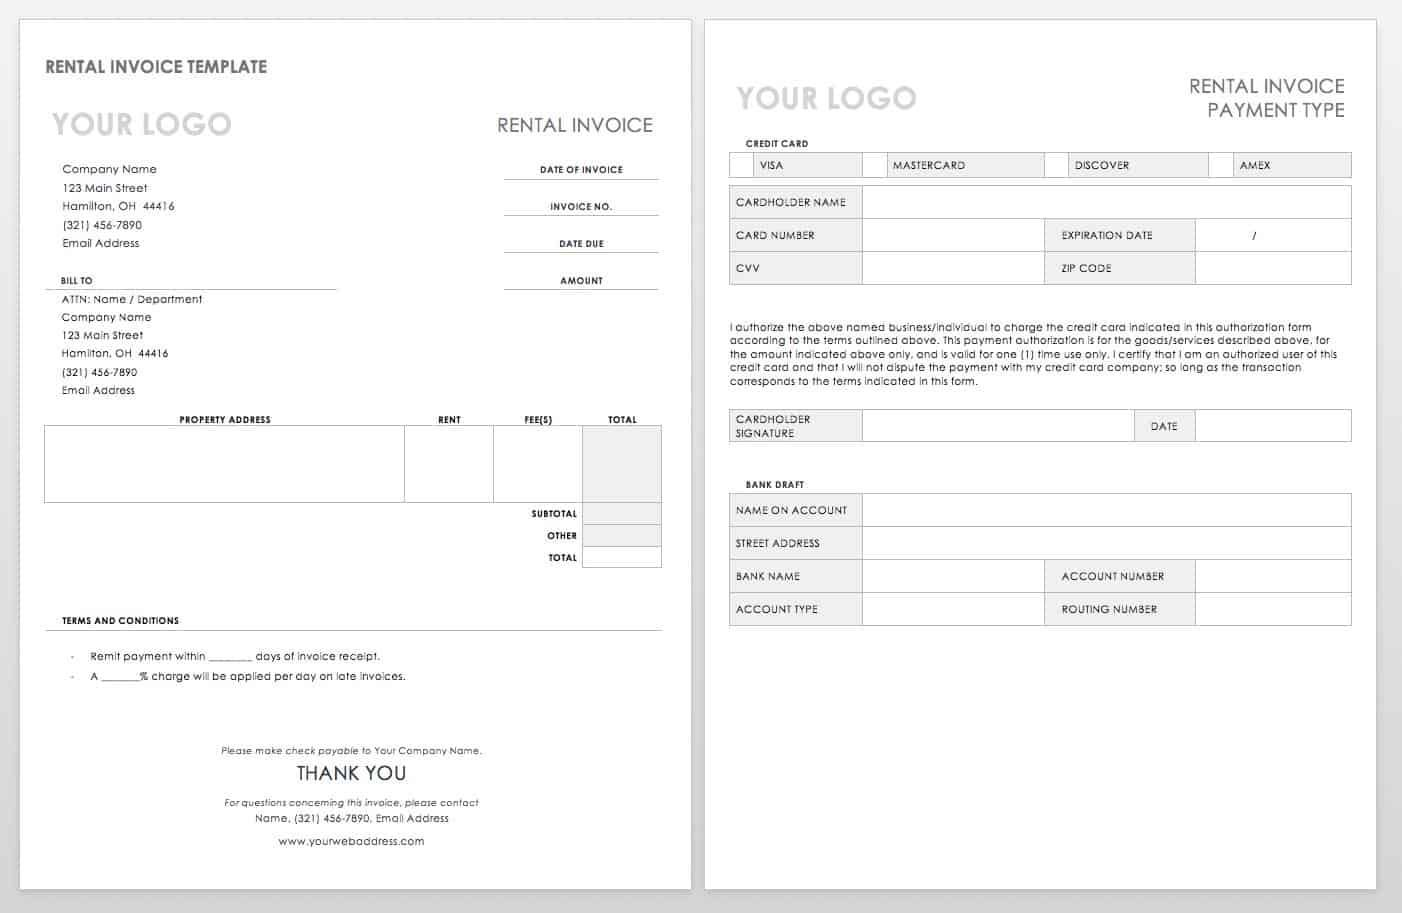 004 Simple Word Invoice Template Free High Resolution  M DownloadFull